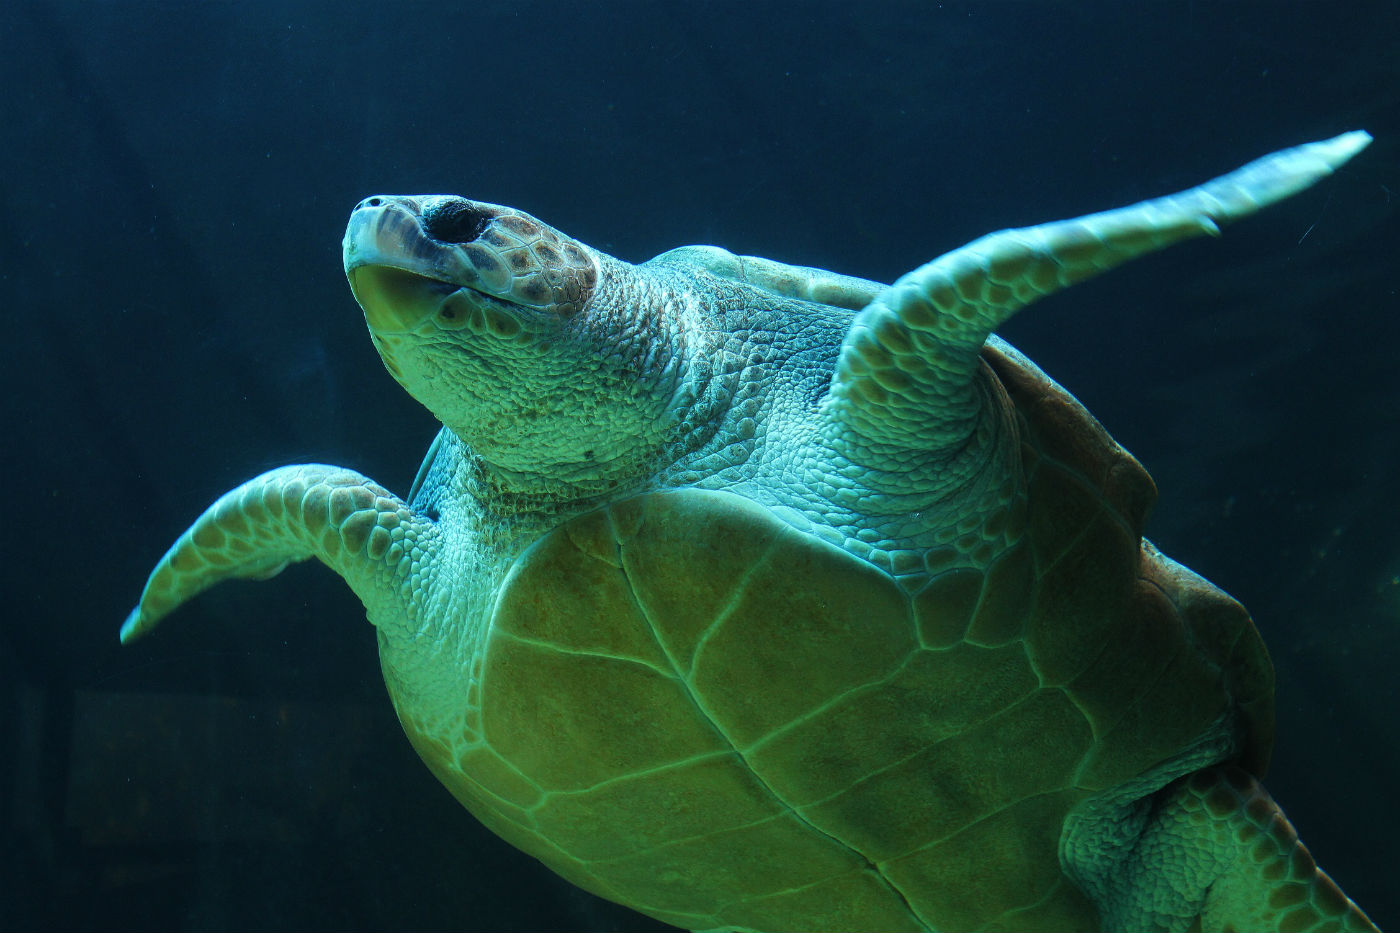 Environmental warming results in 99% female turtles in Australia